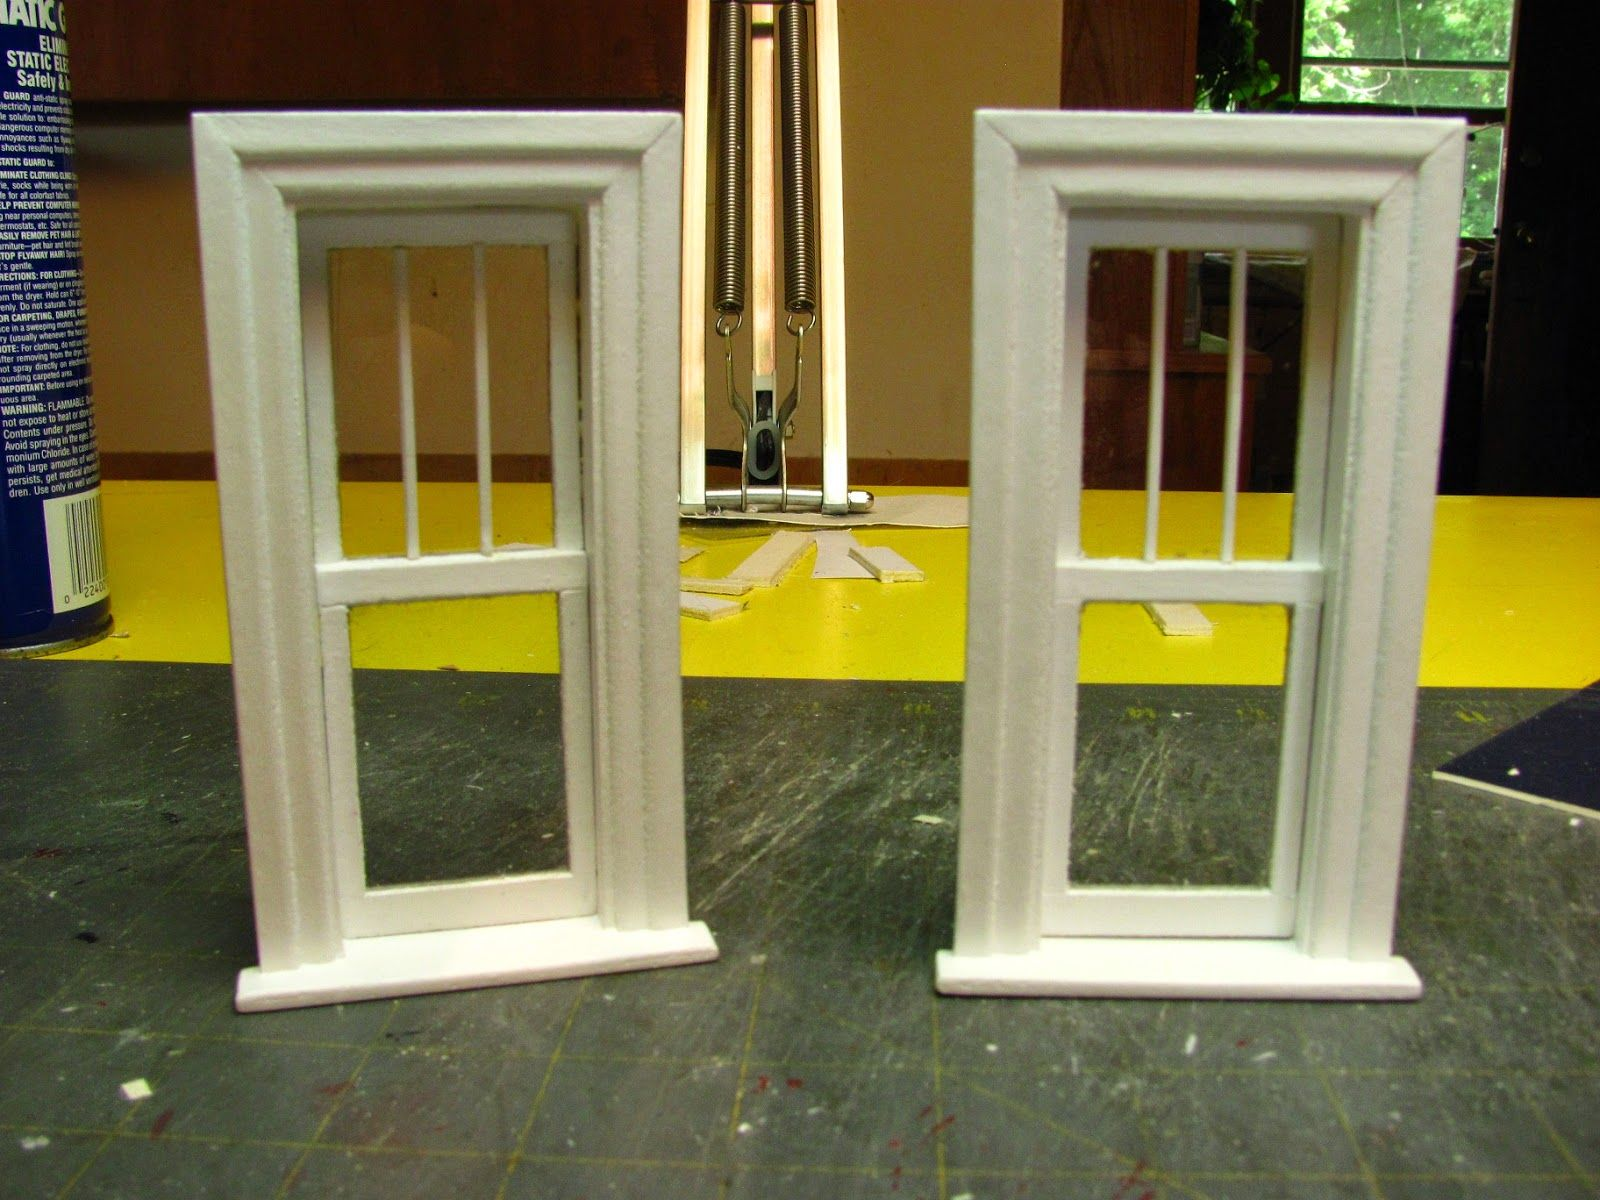 A 1 Custom Cabinets How To Make A 1 Inch Scale Dollhouse Interior Door And Jamb From